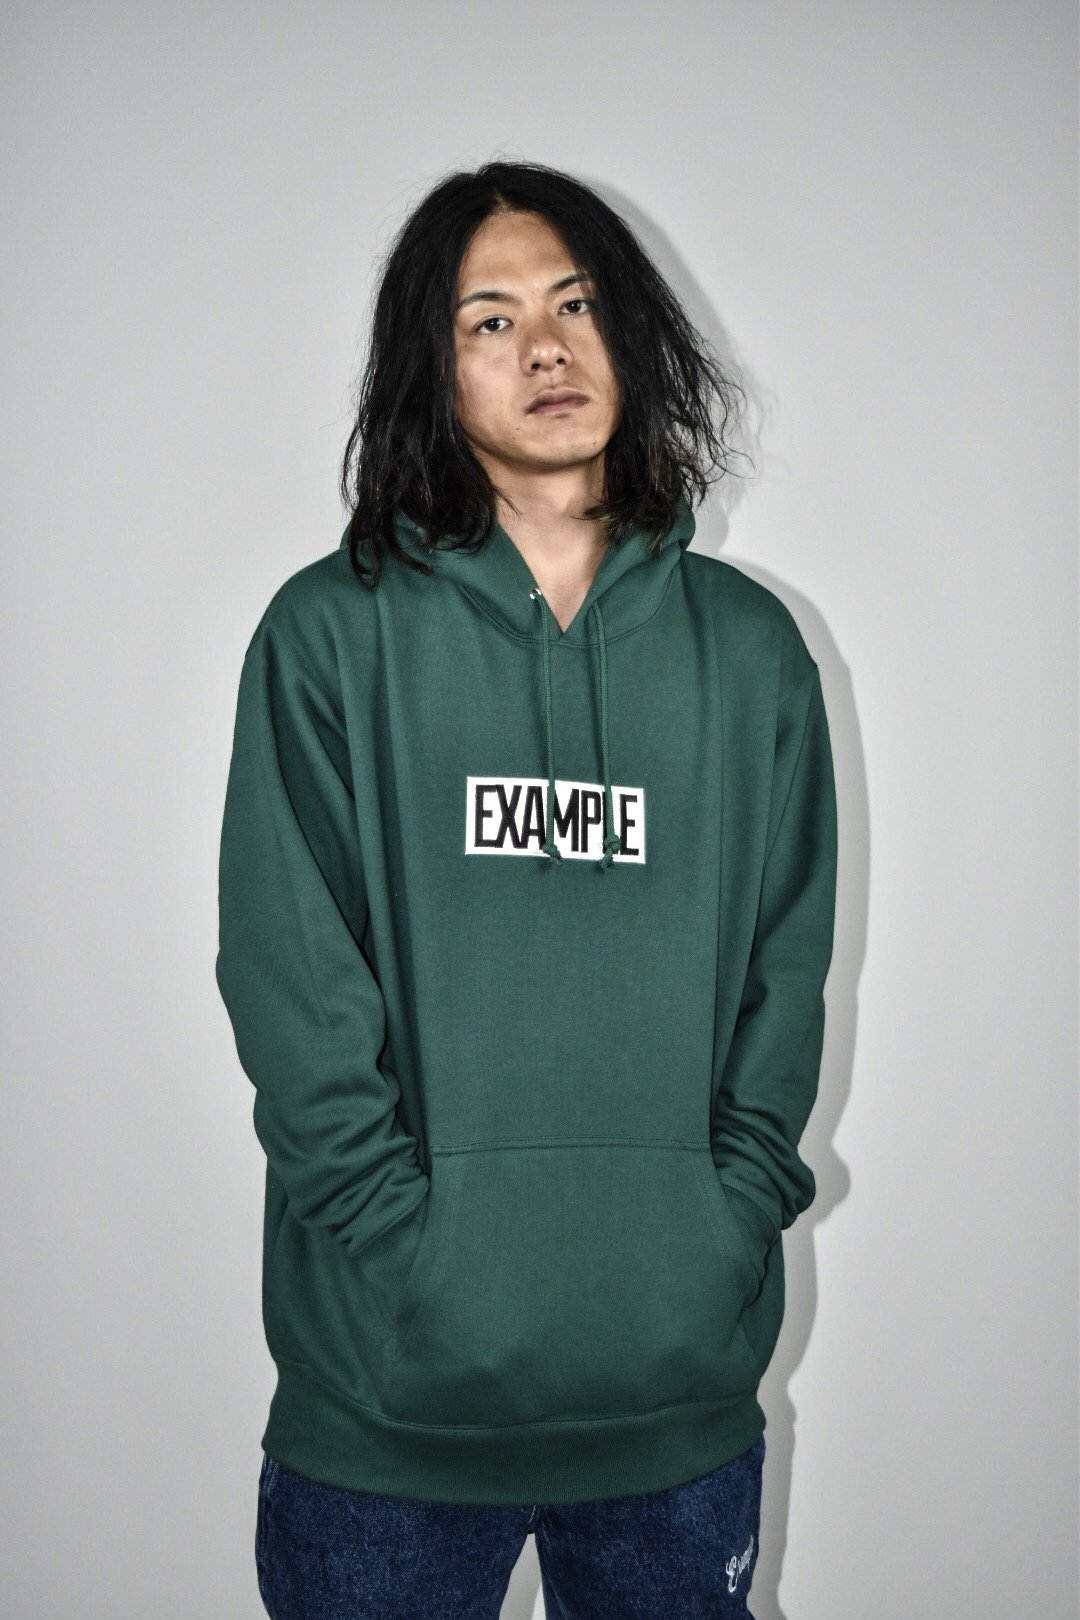 example-19fw-collection-lookbook-launch-20190921